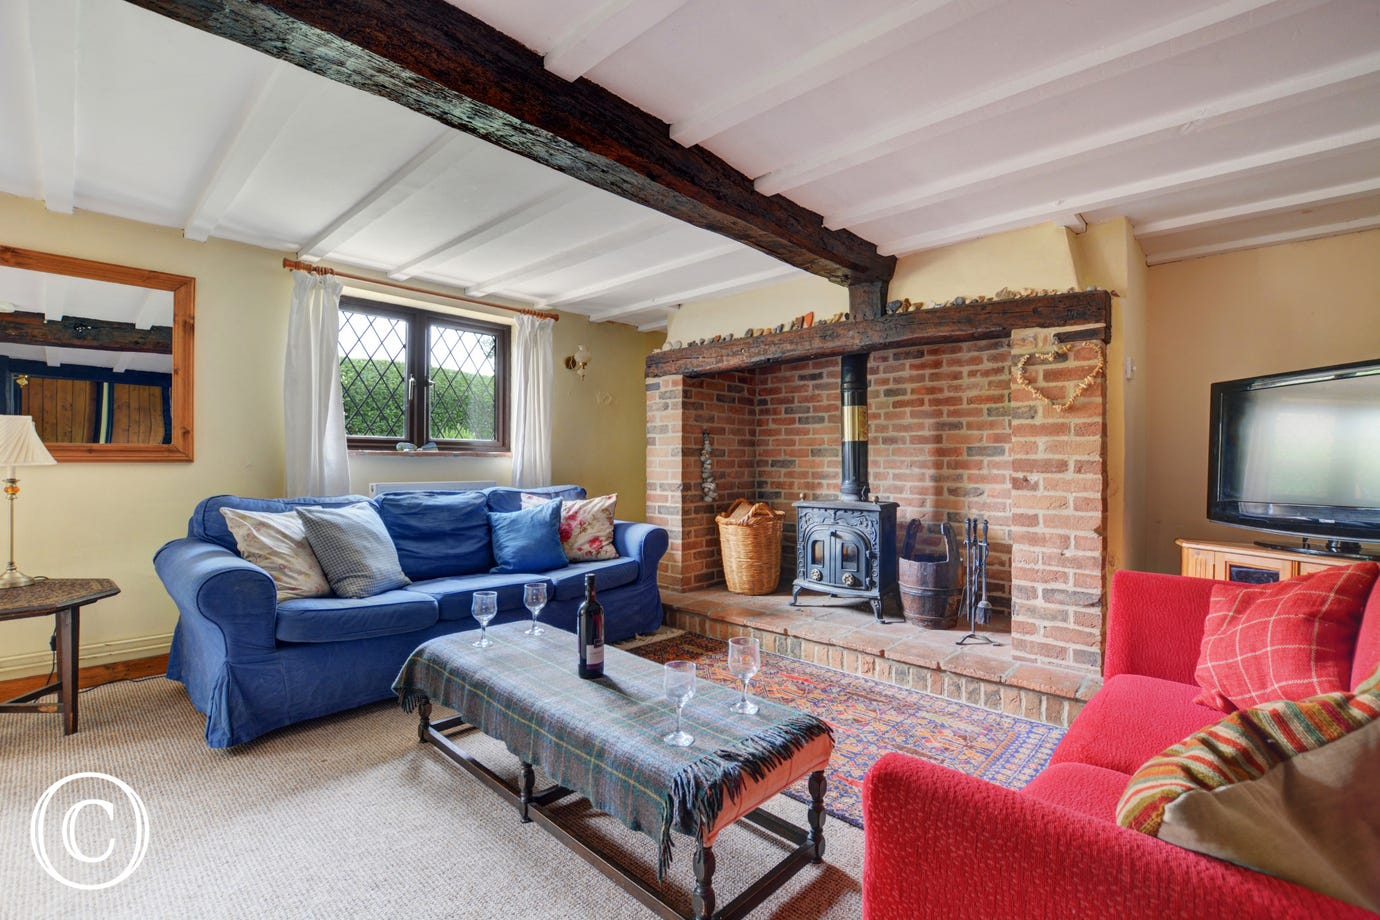 The lovely sitting room, with comfortable seating and a woodburner for cosy evenings